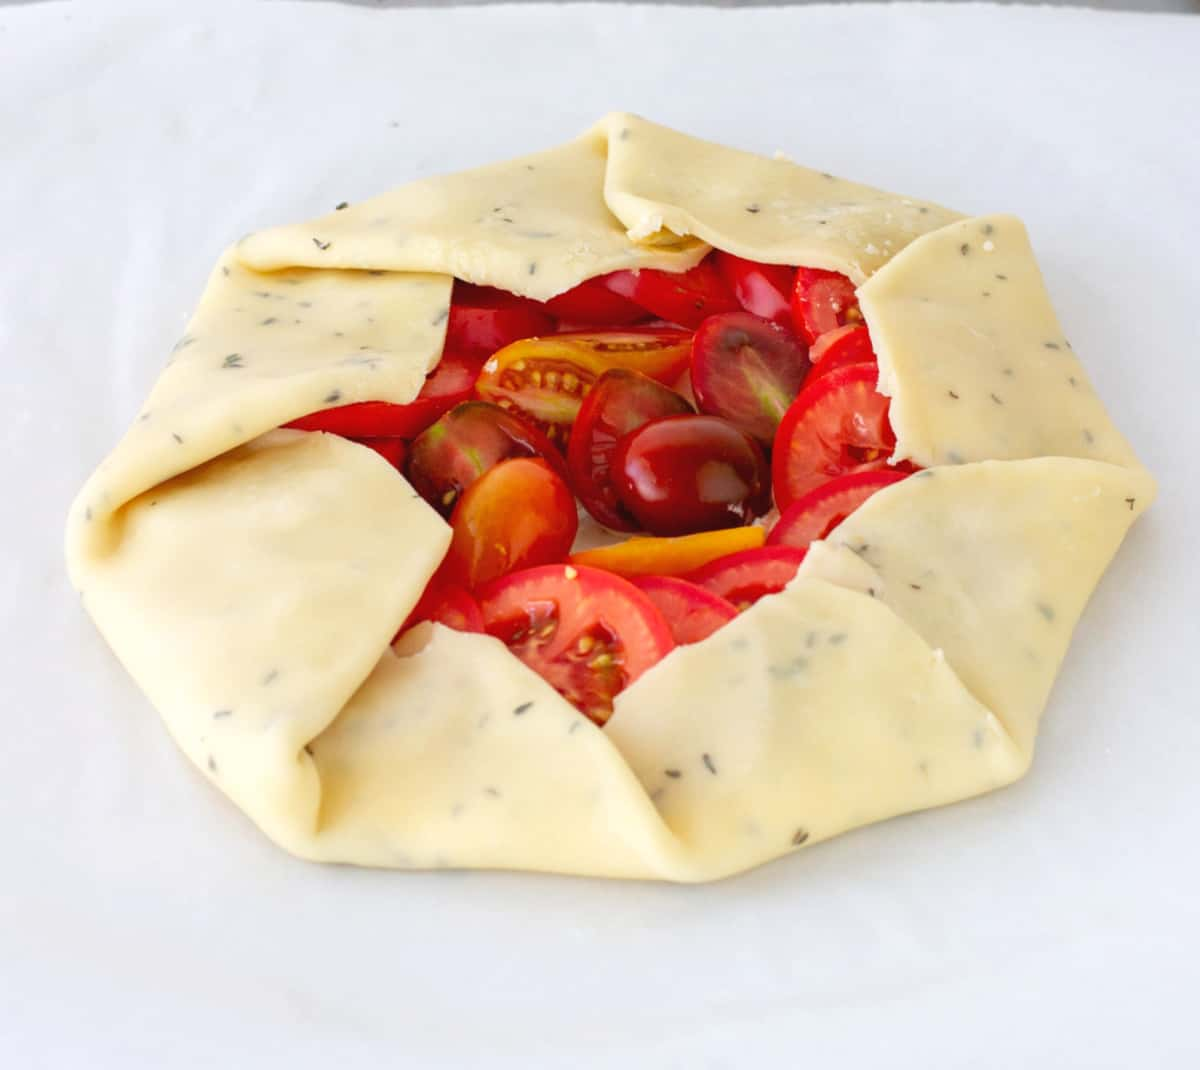 Unbaked tomato galette on white paper